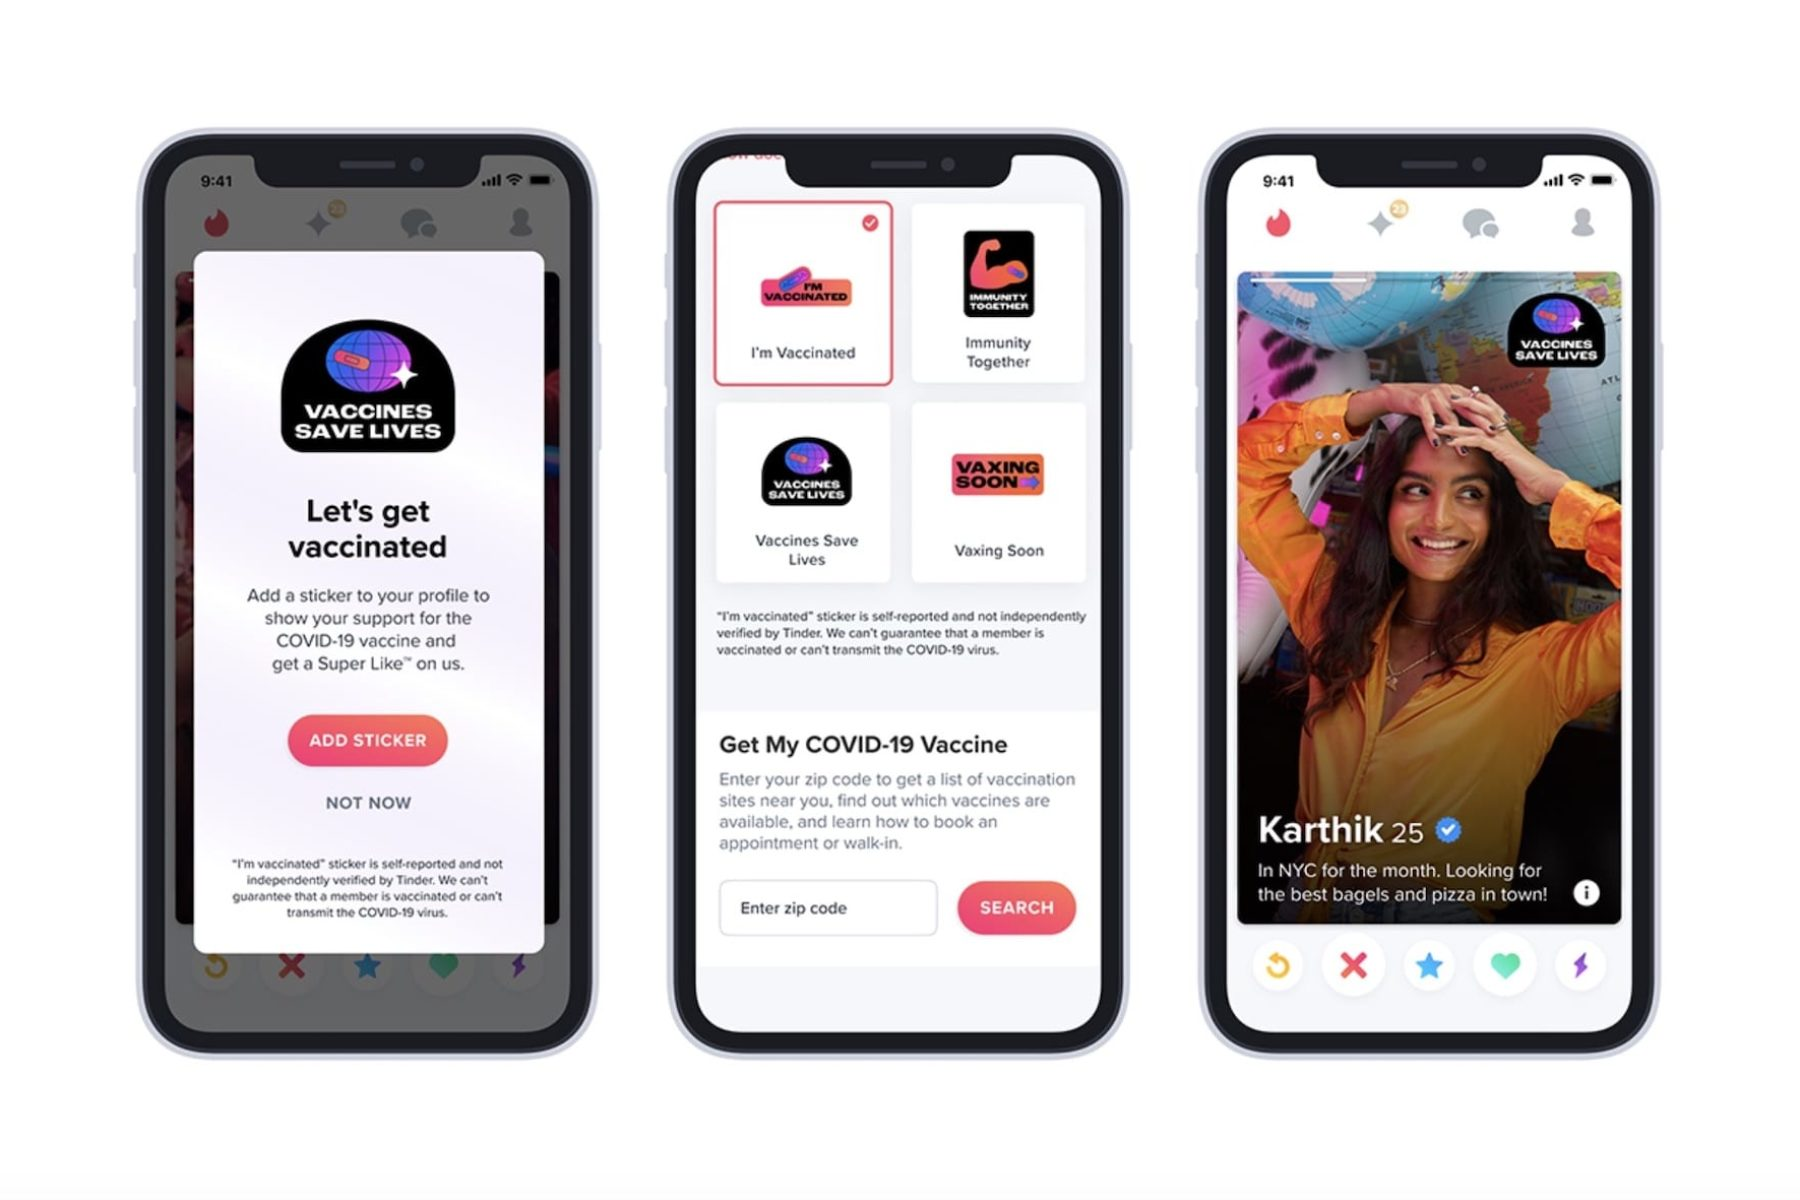 A screenshot of different features of the Tinder app.